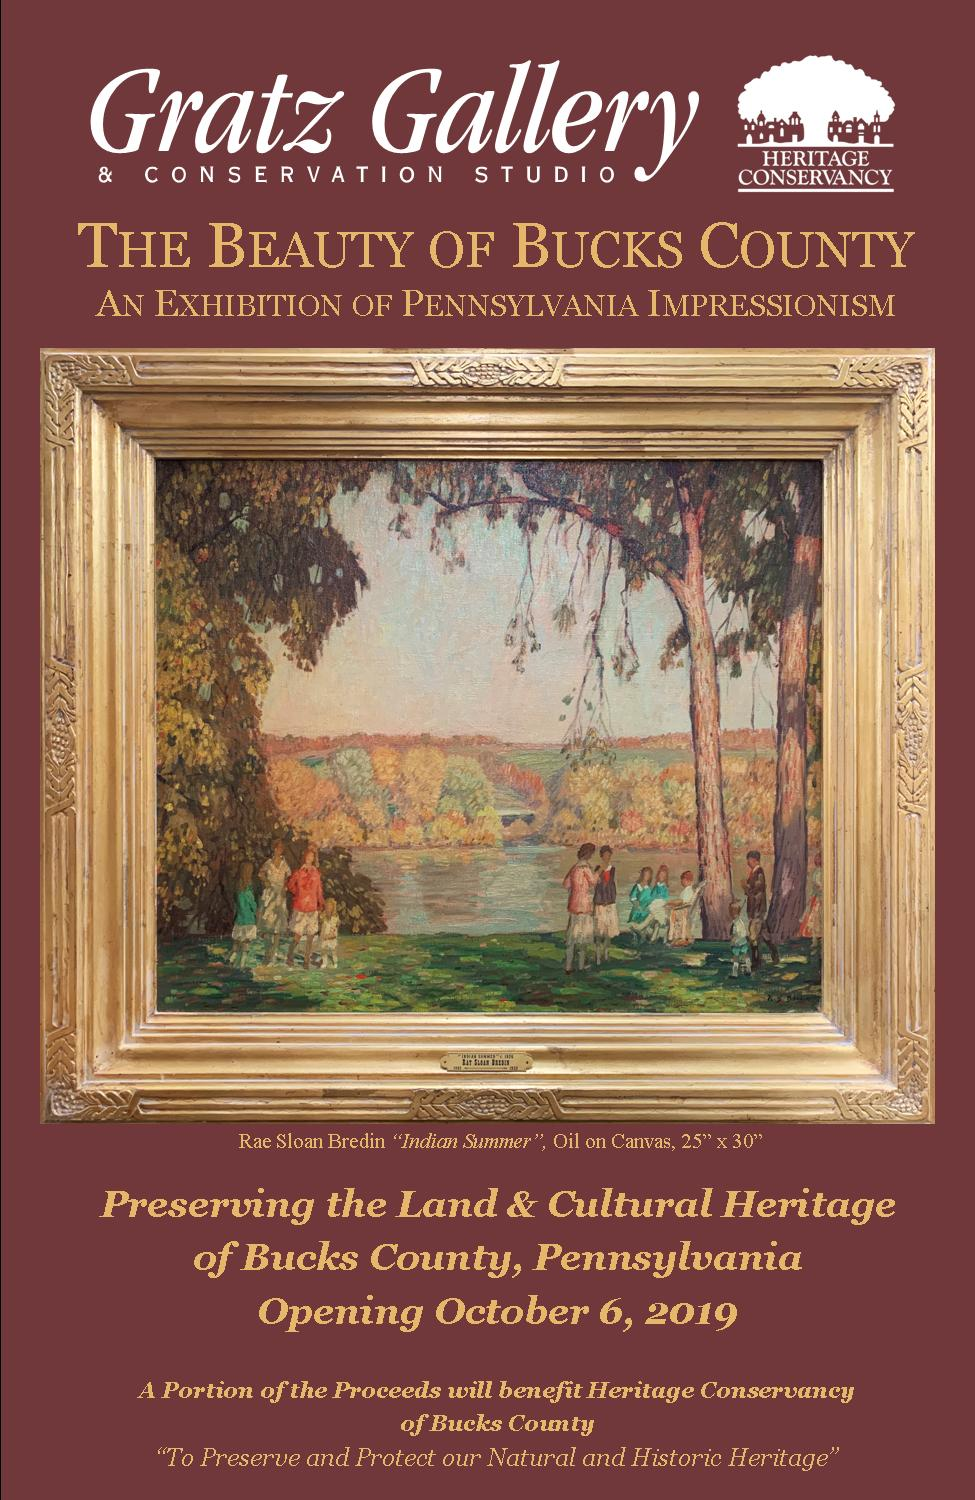 THE BEAUTY OF BUCKS COUNTY